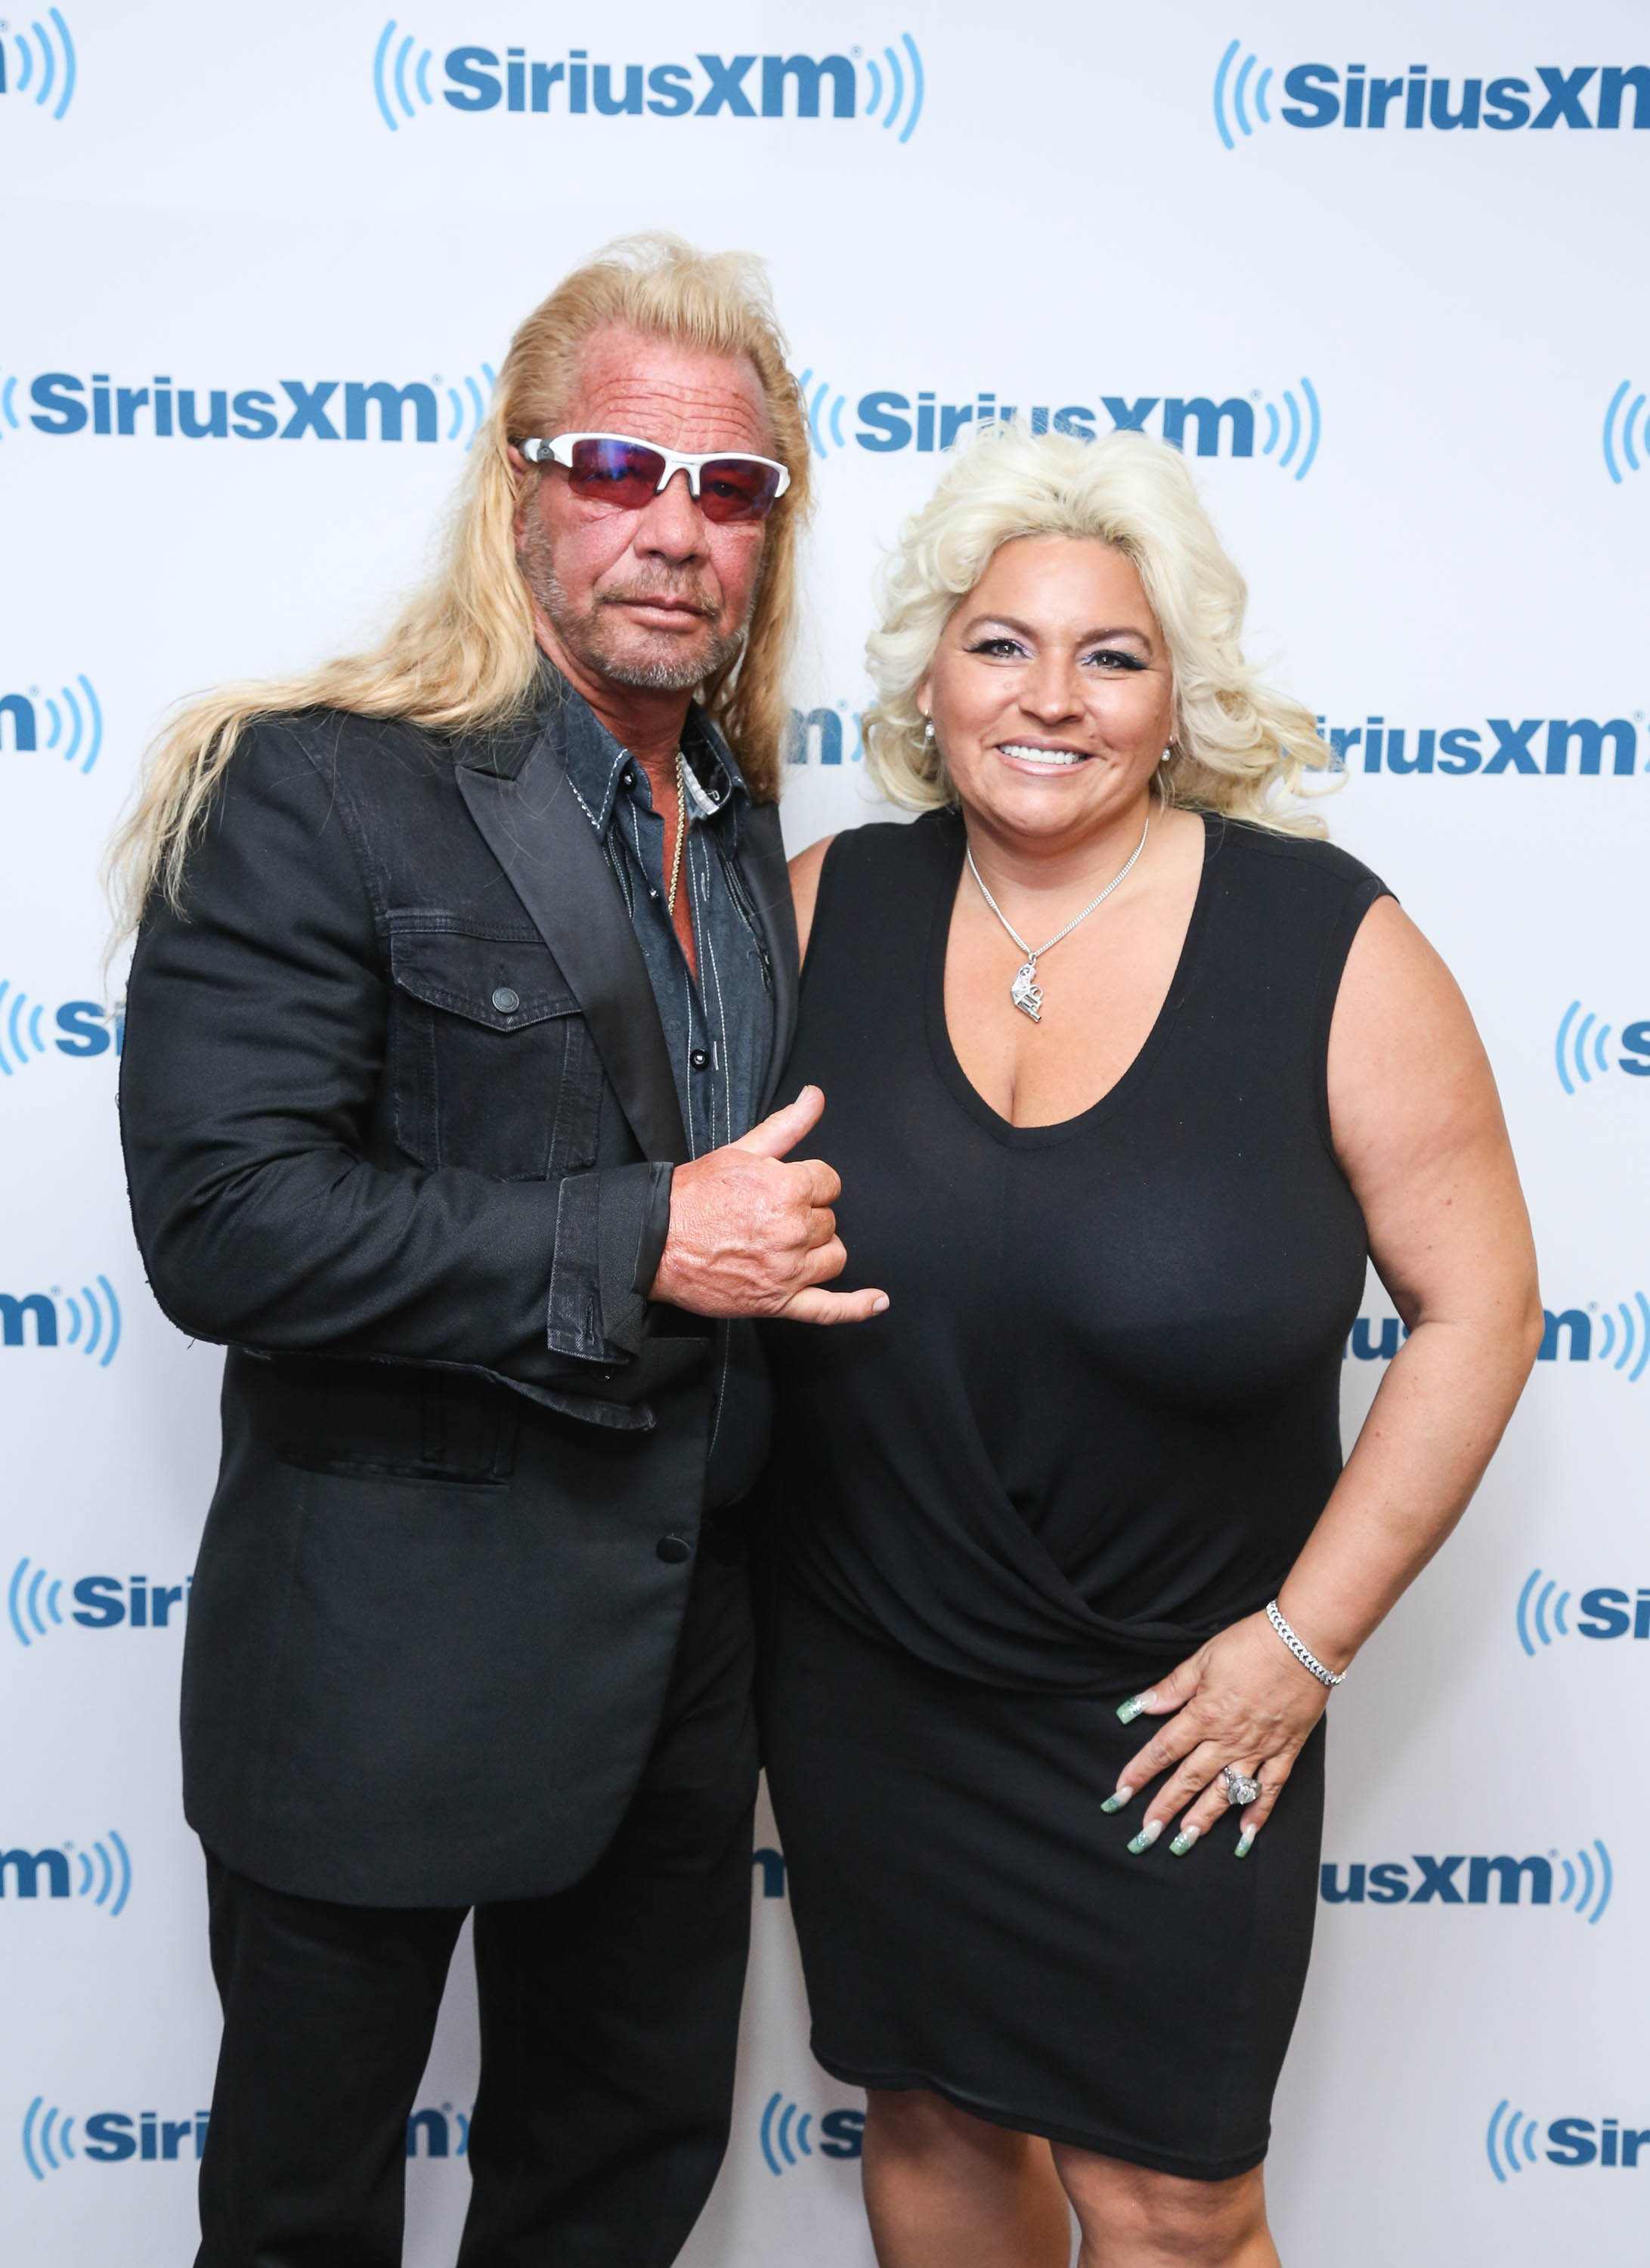 Dog the Bounty Hunter, Duane Chapman and wife Beth Chapman visit at SiriusXM Studios on June 9, 2014 in New York City.   Source: Getty Images